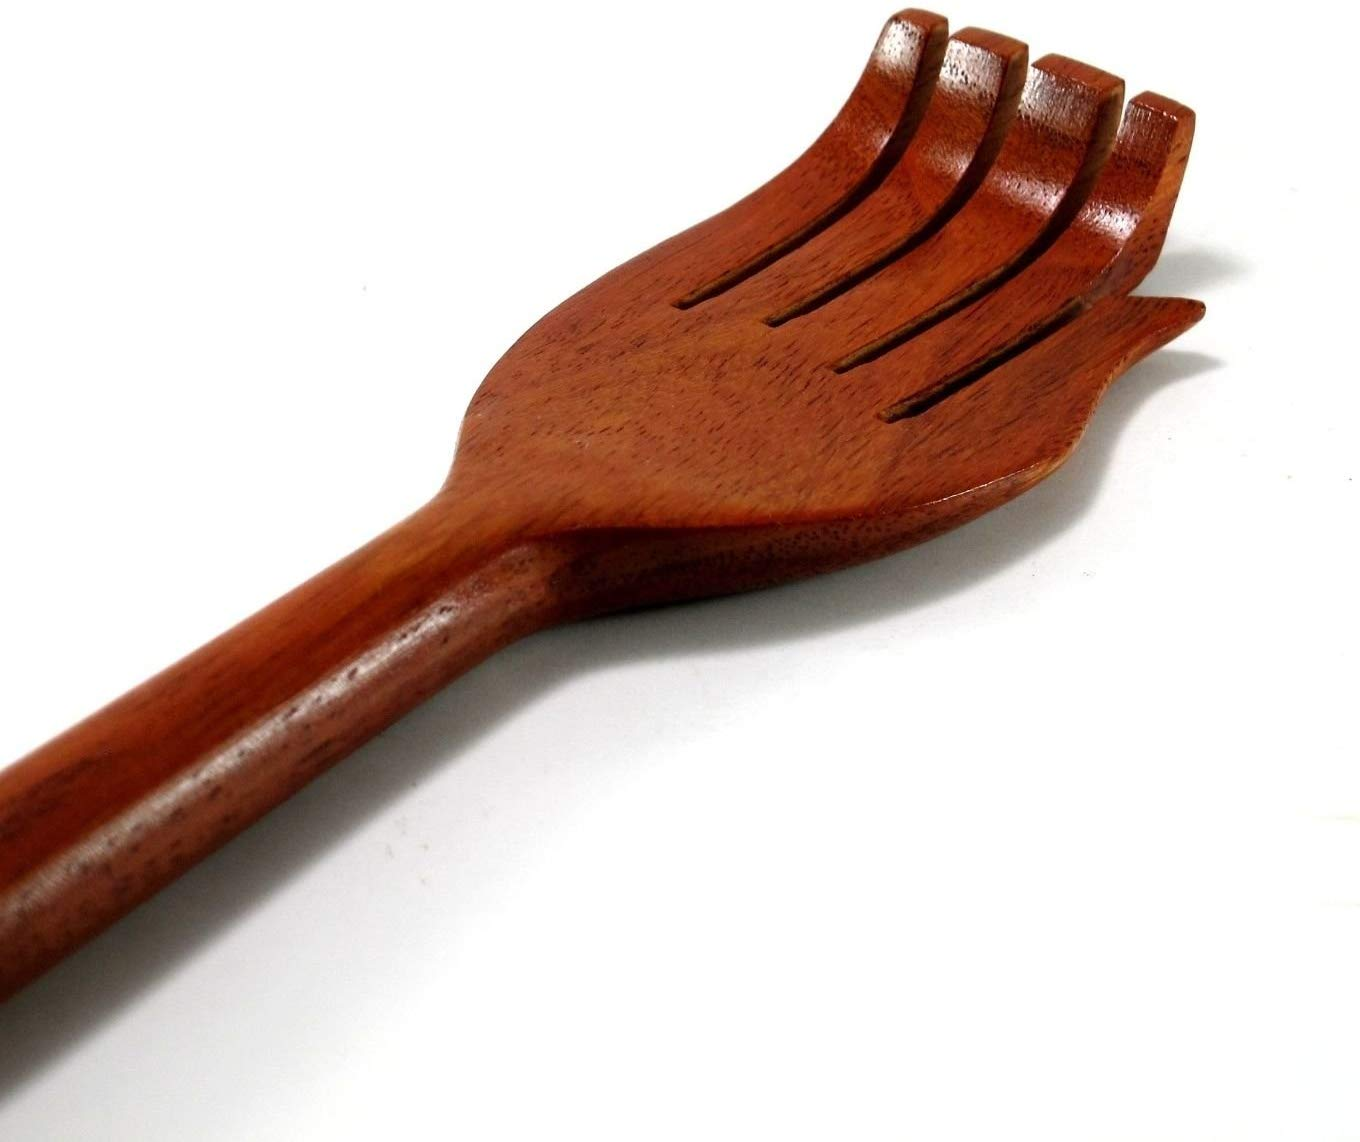 KHUNJOE - wooden Back Scratcher